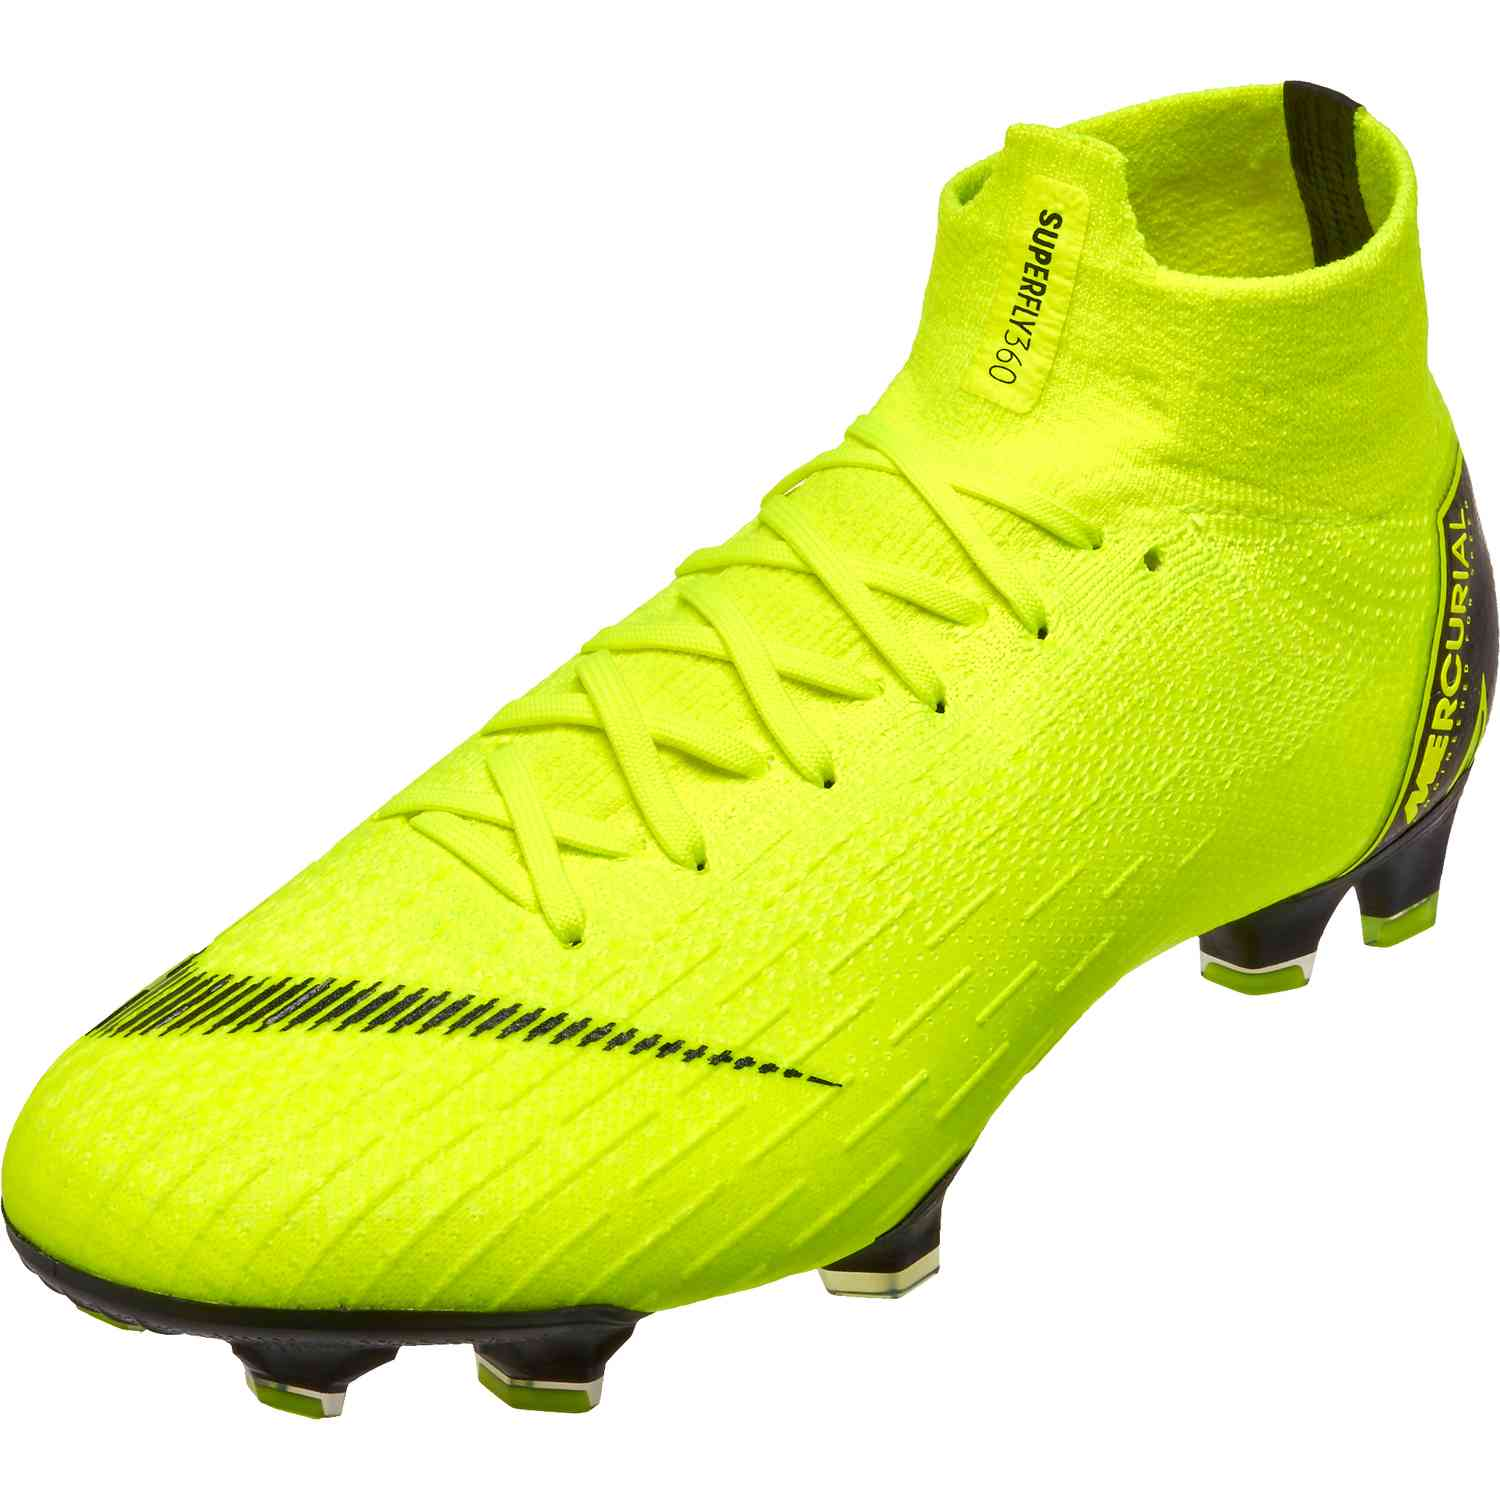 ad8f786c988 Nike Mercurial Superfly 6 Elite - New Wave Pack 1 - SoccerPro